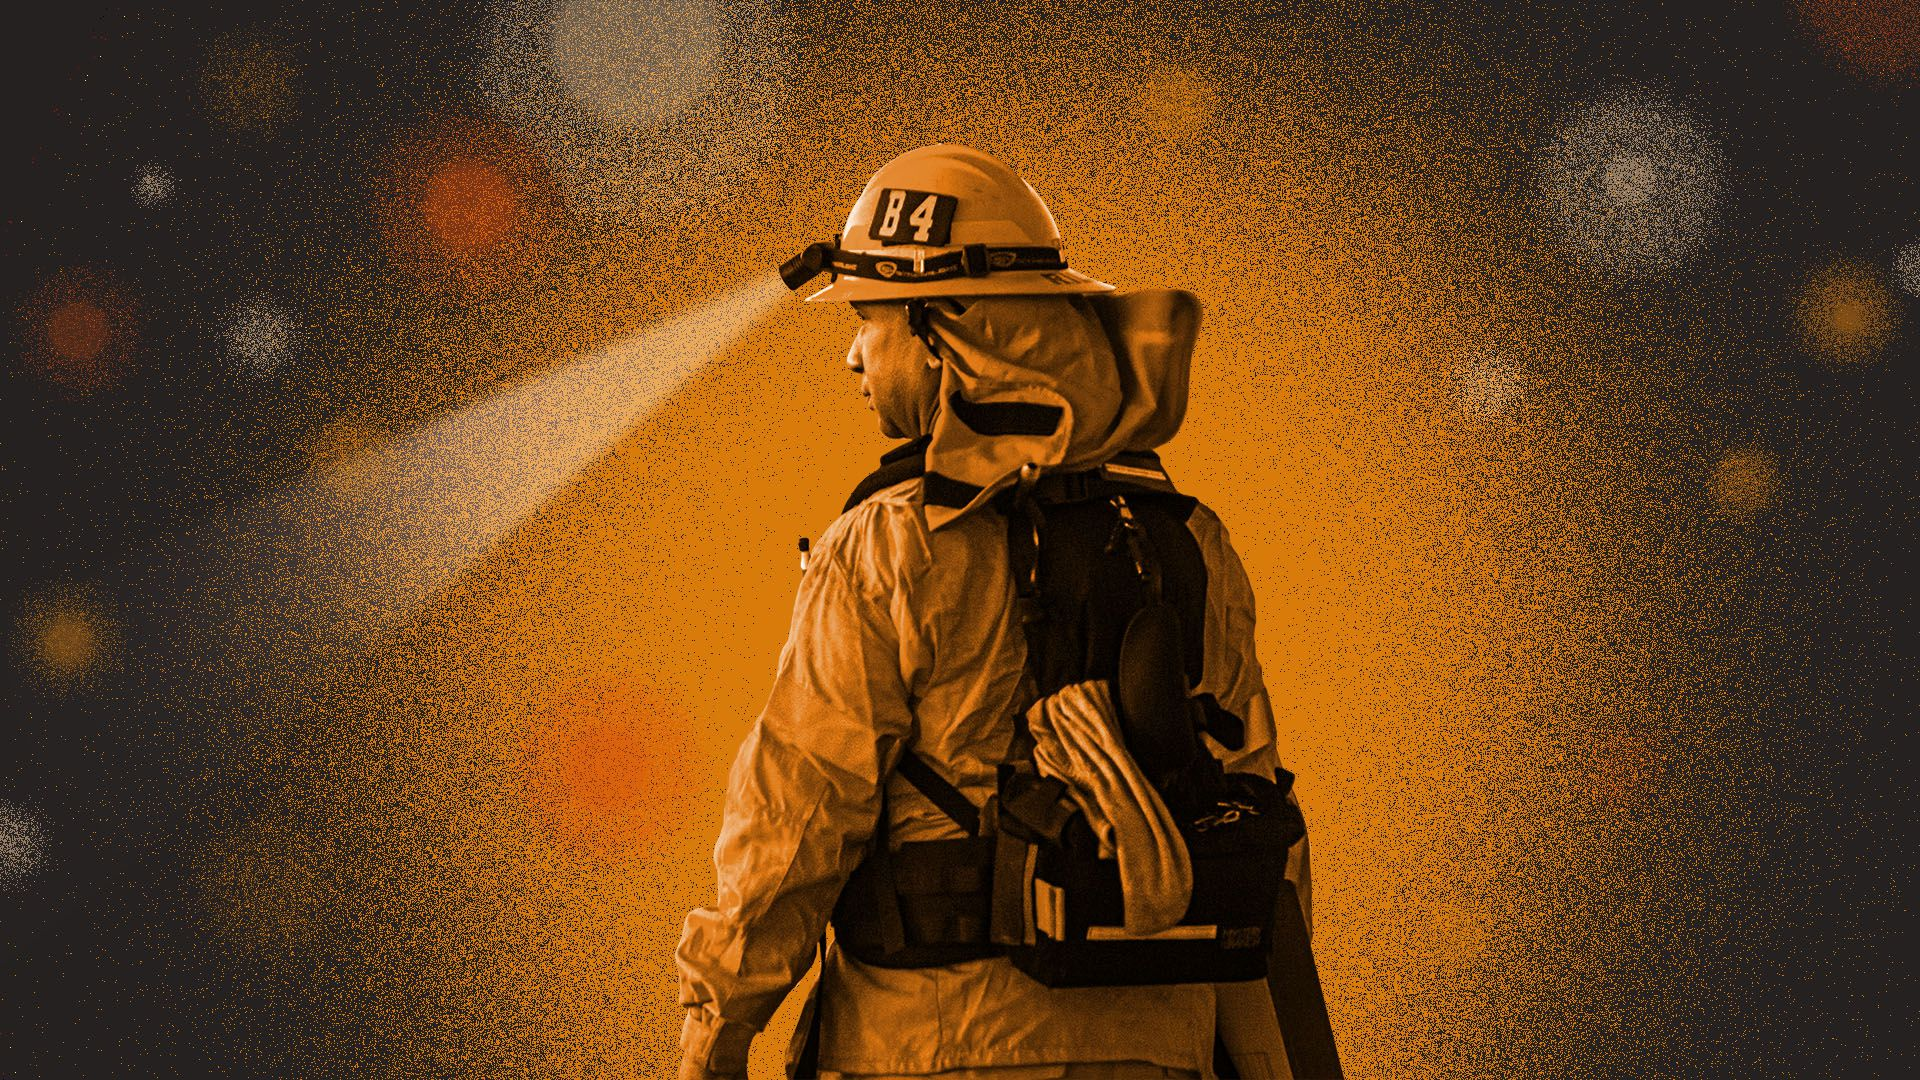 Illustration of a firefighter with his back to the viewer surrounded by lights and embers